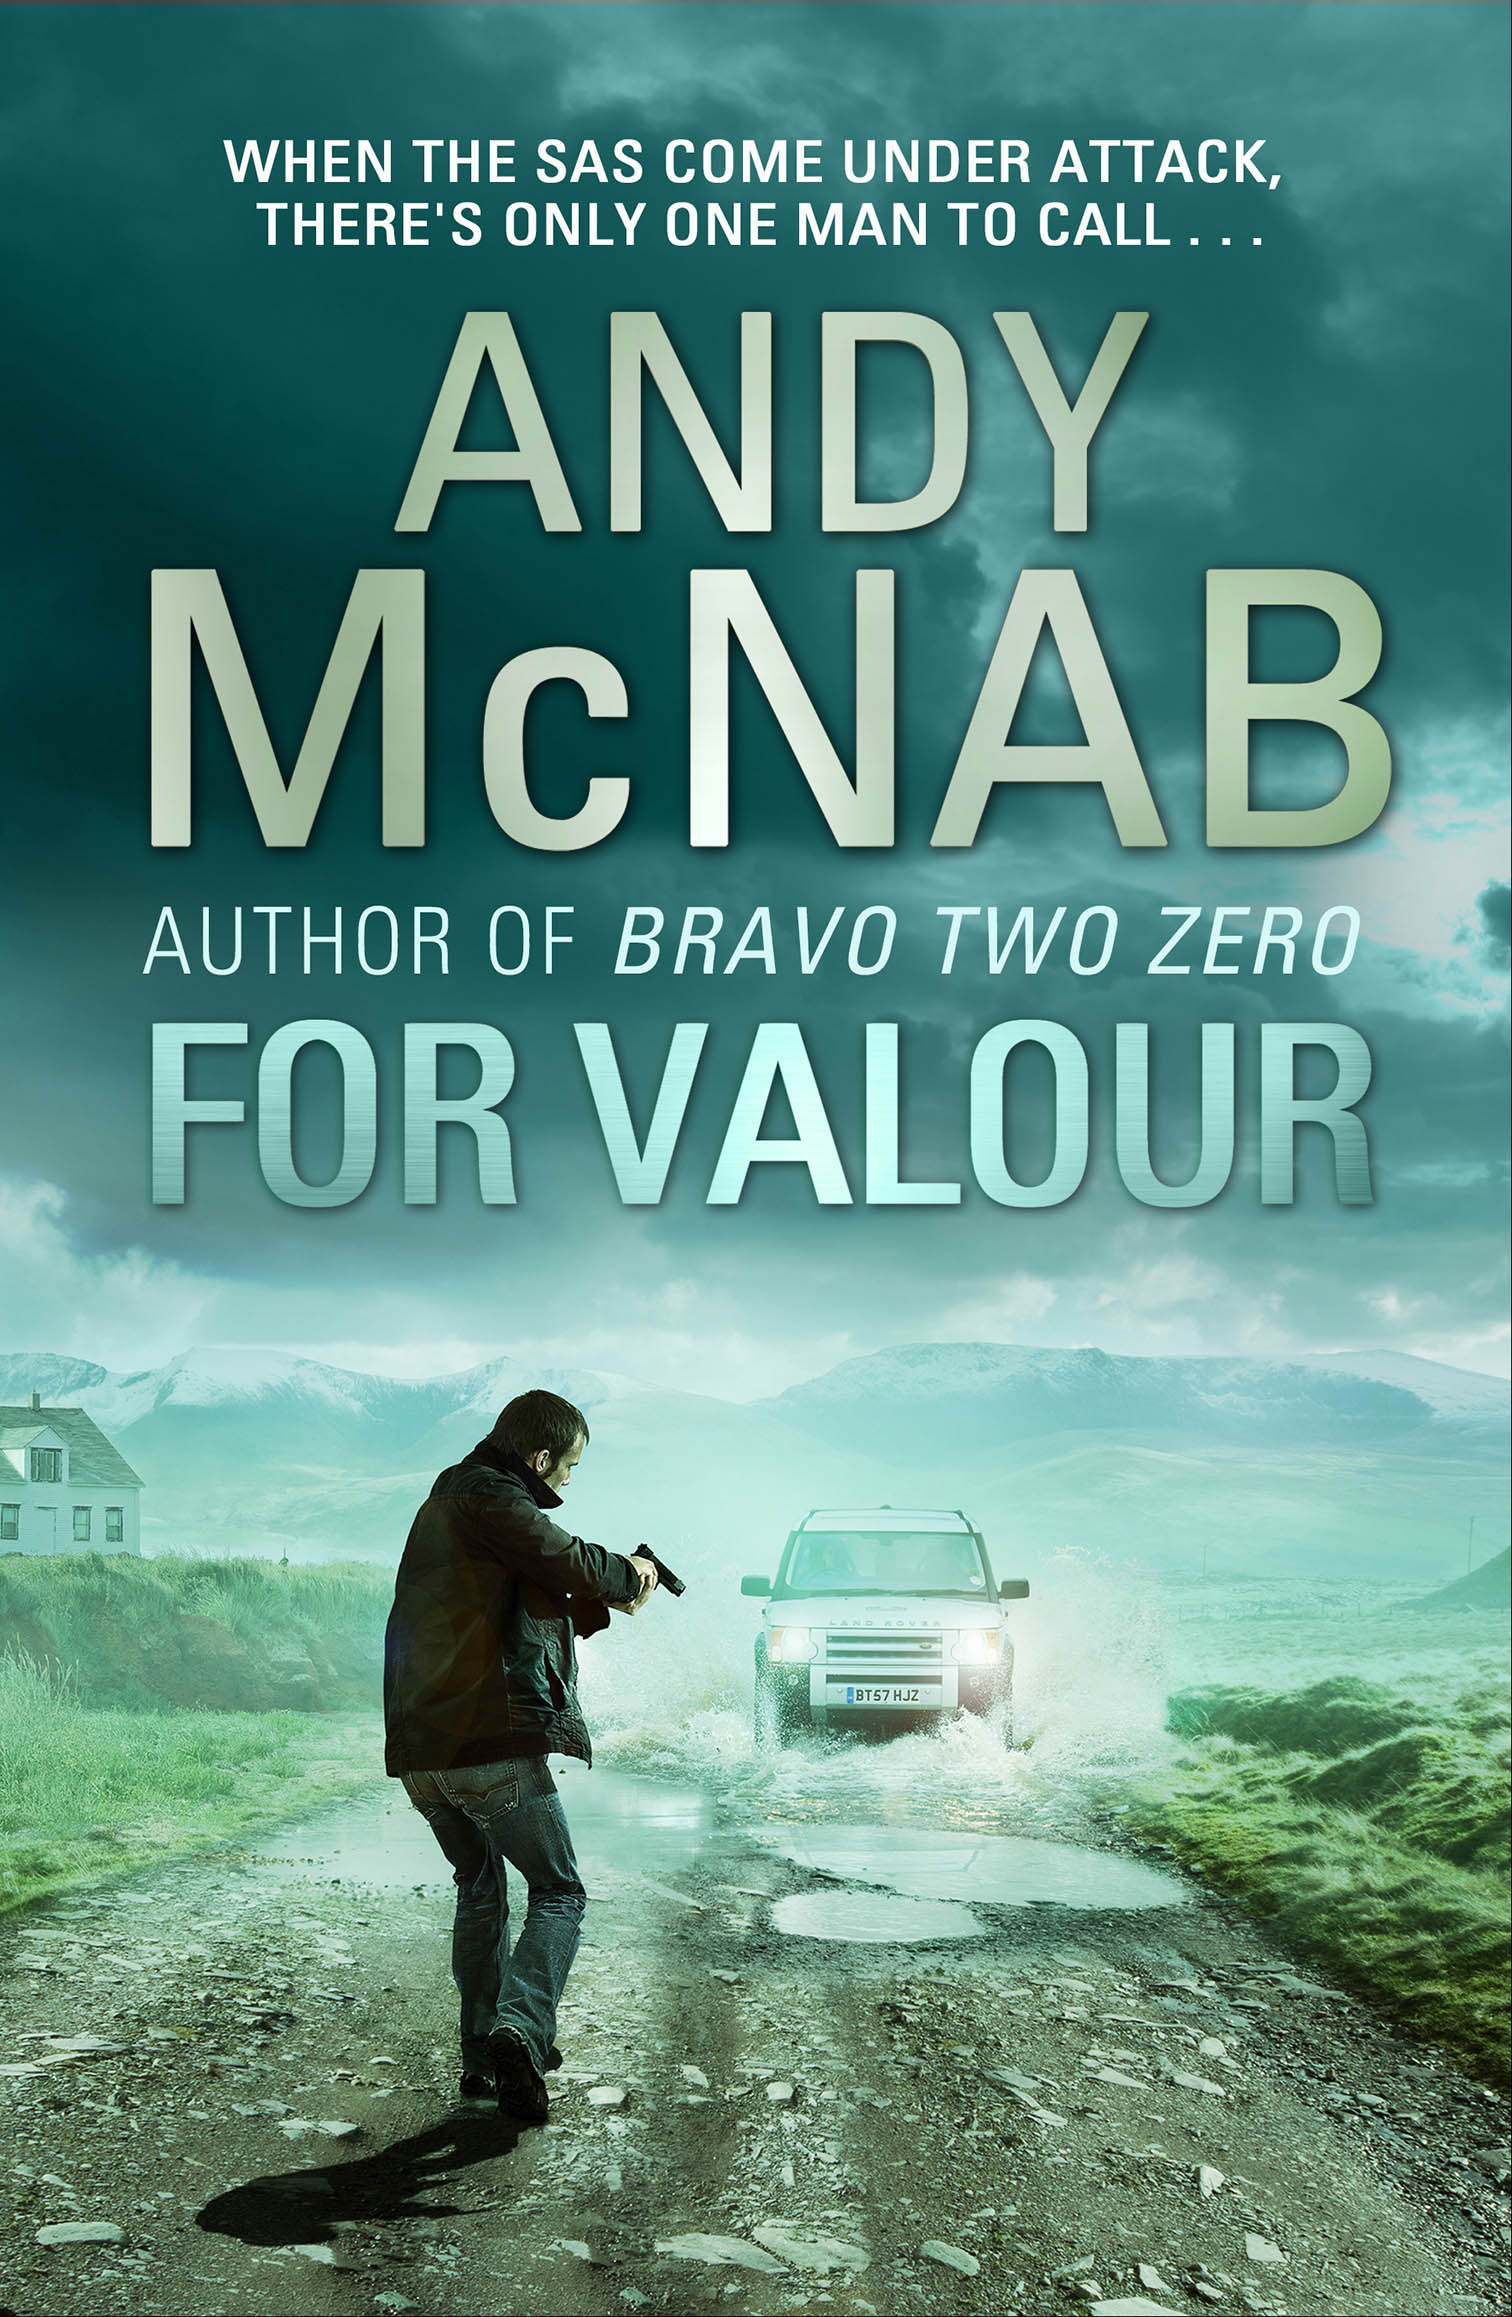 FOR VALOR by ANDY McNAB